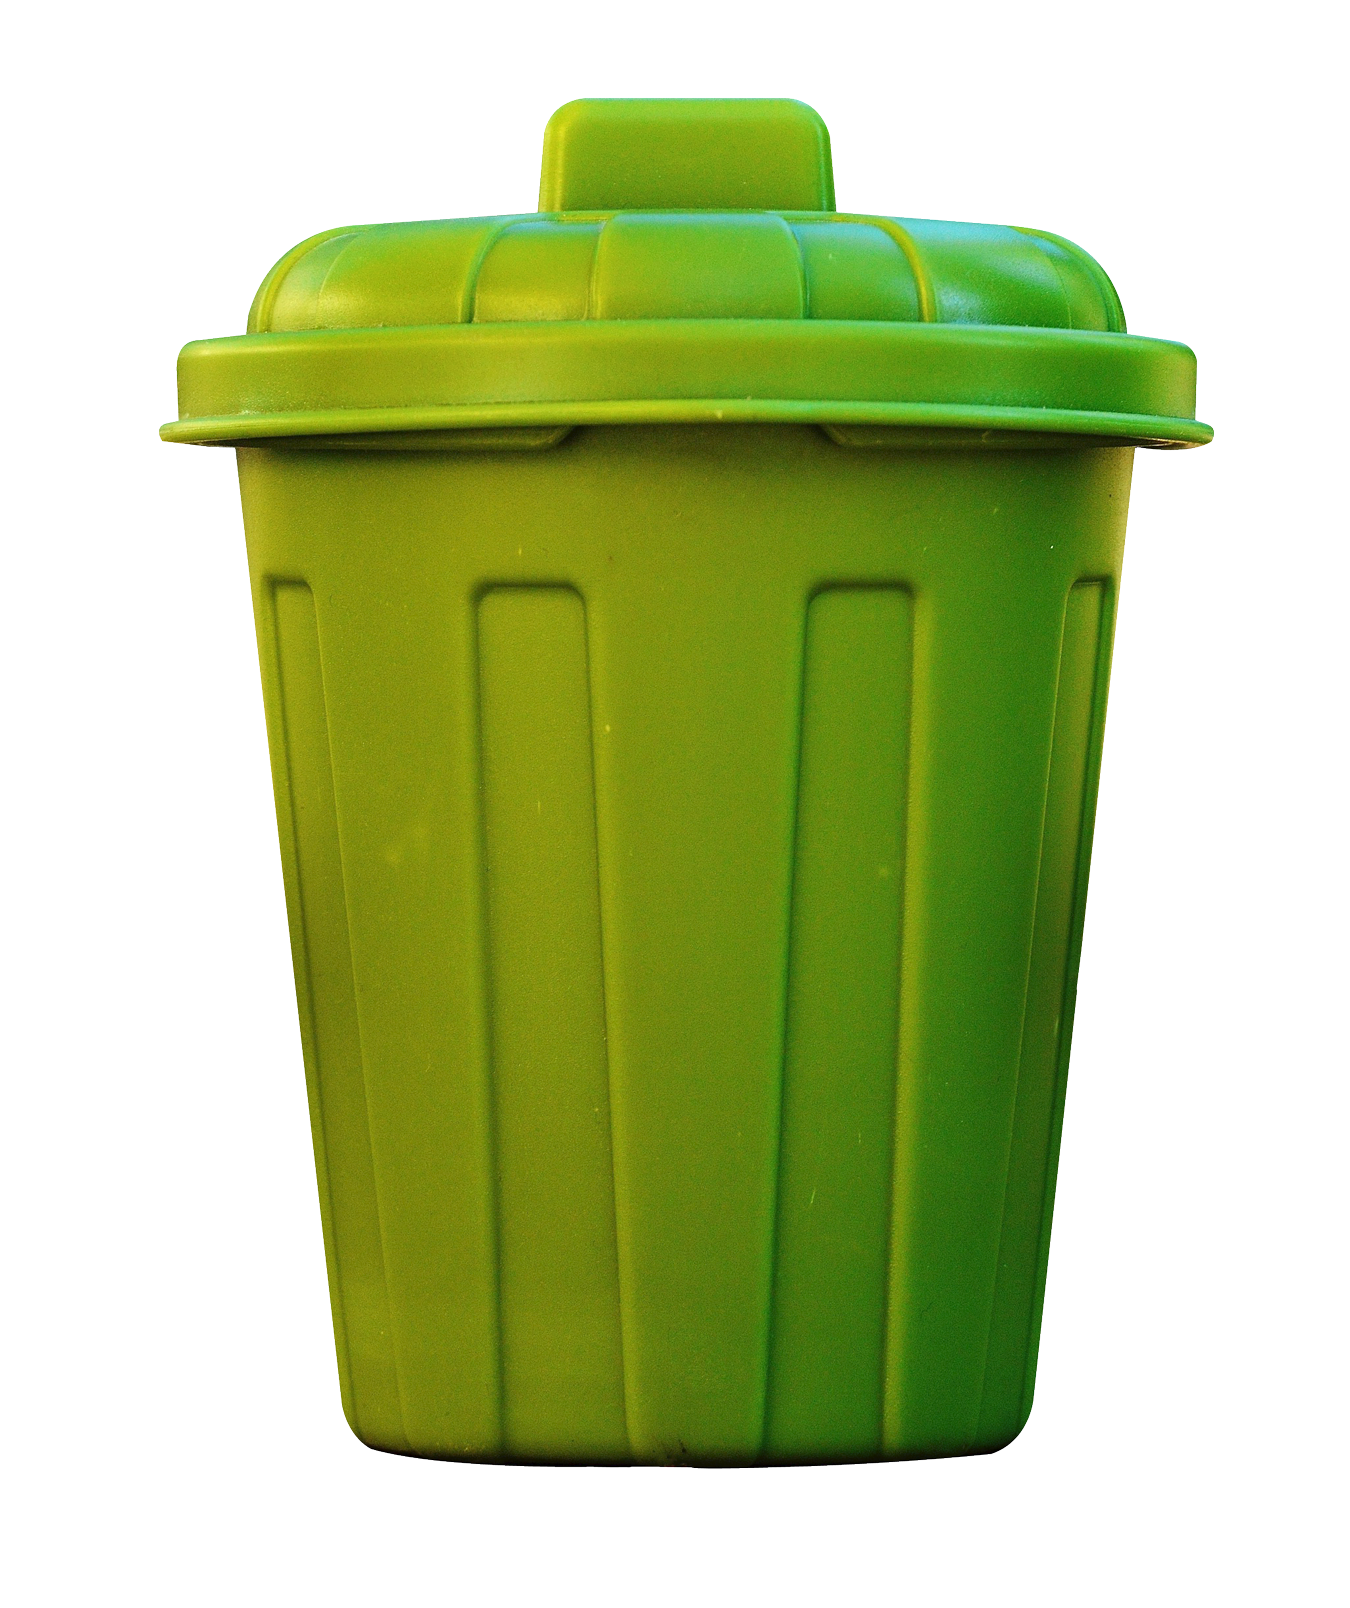 Recycling Bin Waste Container Recycle Free Download PNG HQ PNG Image